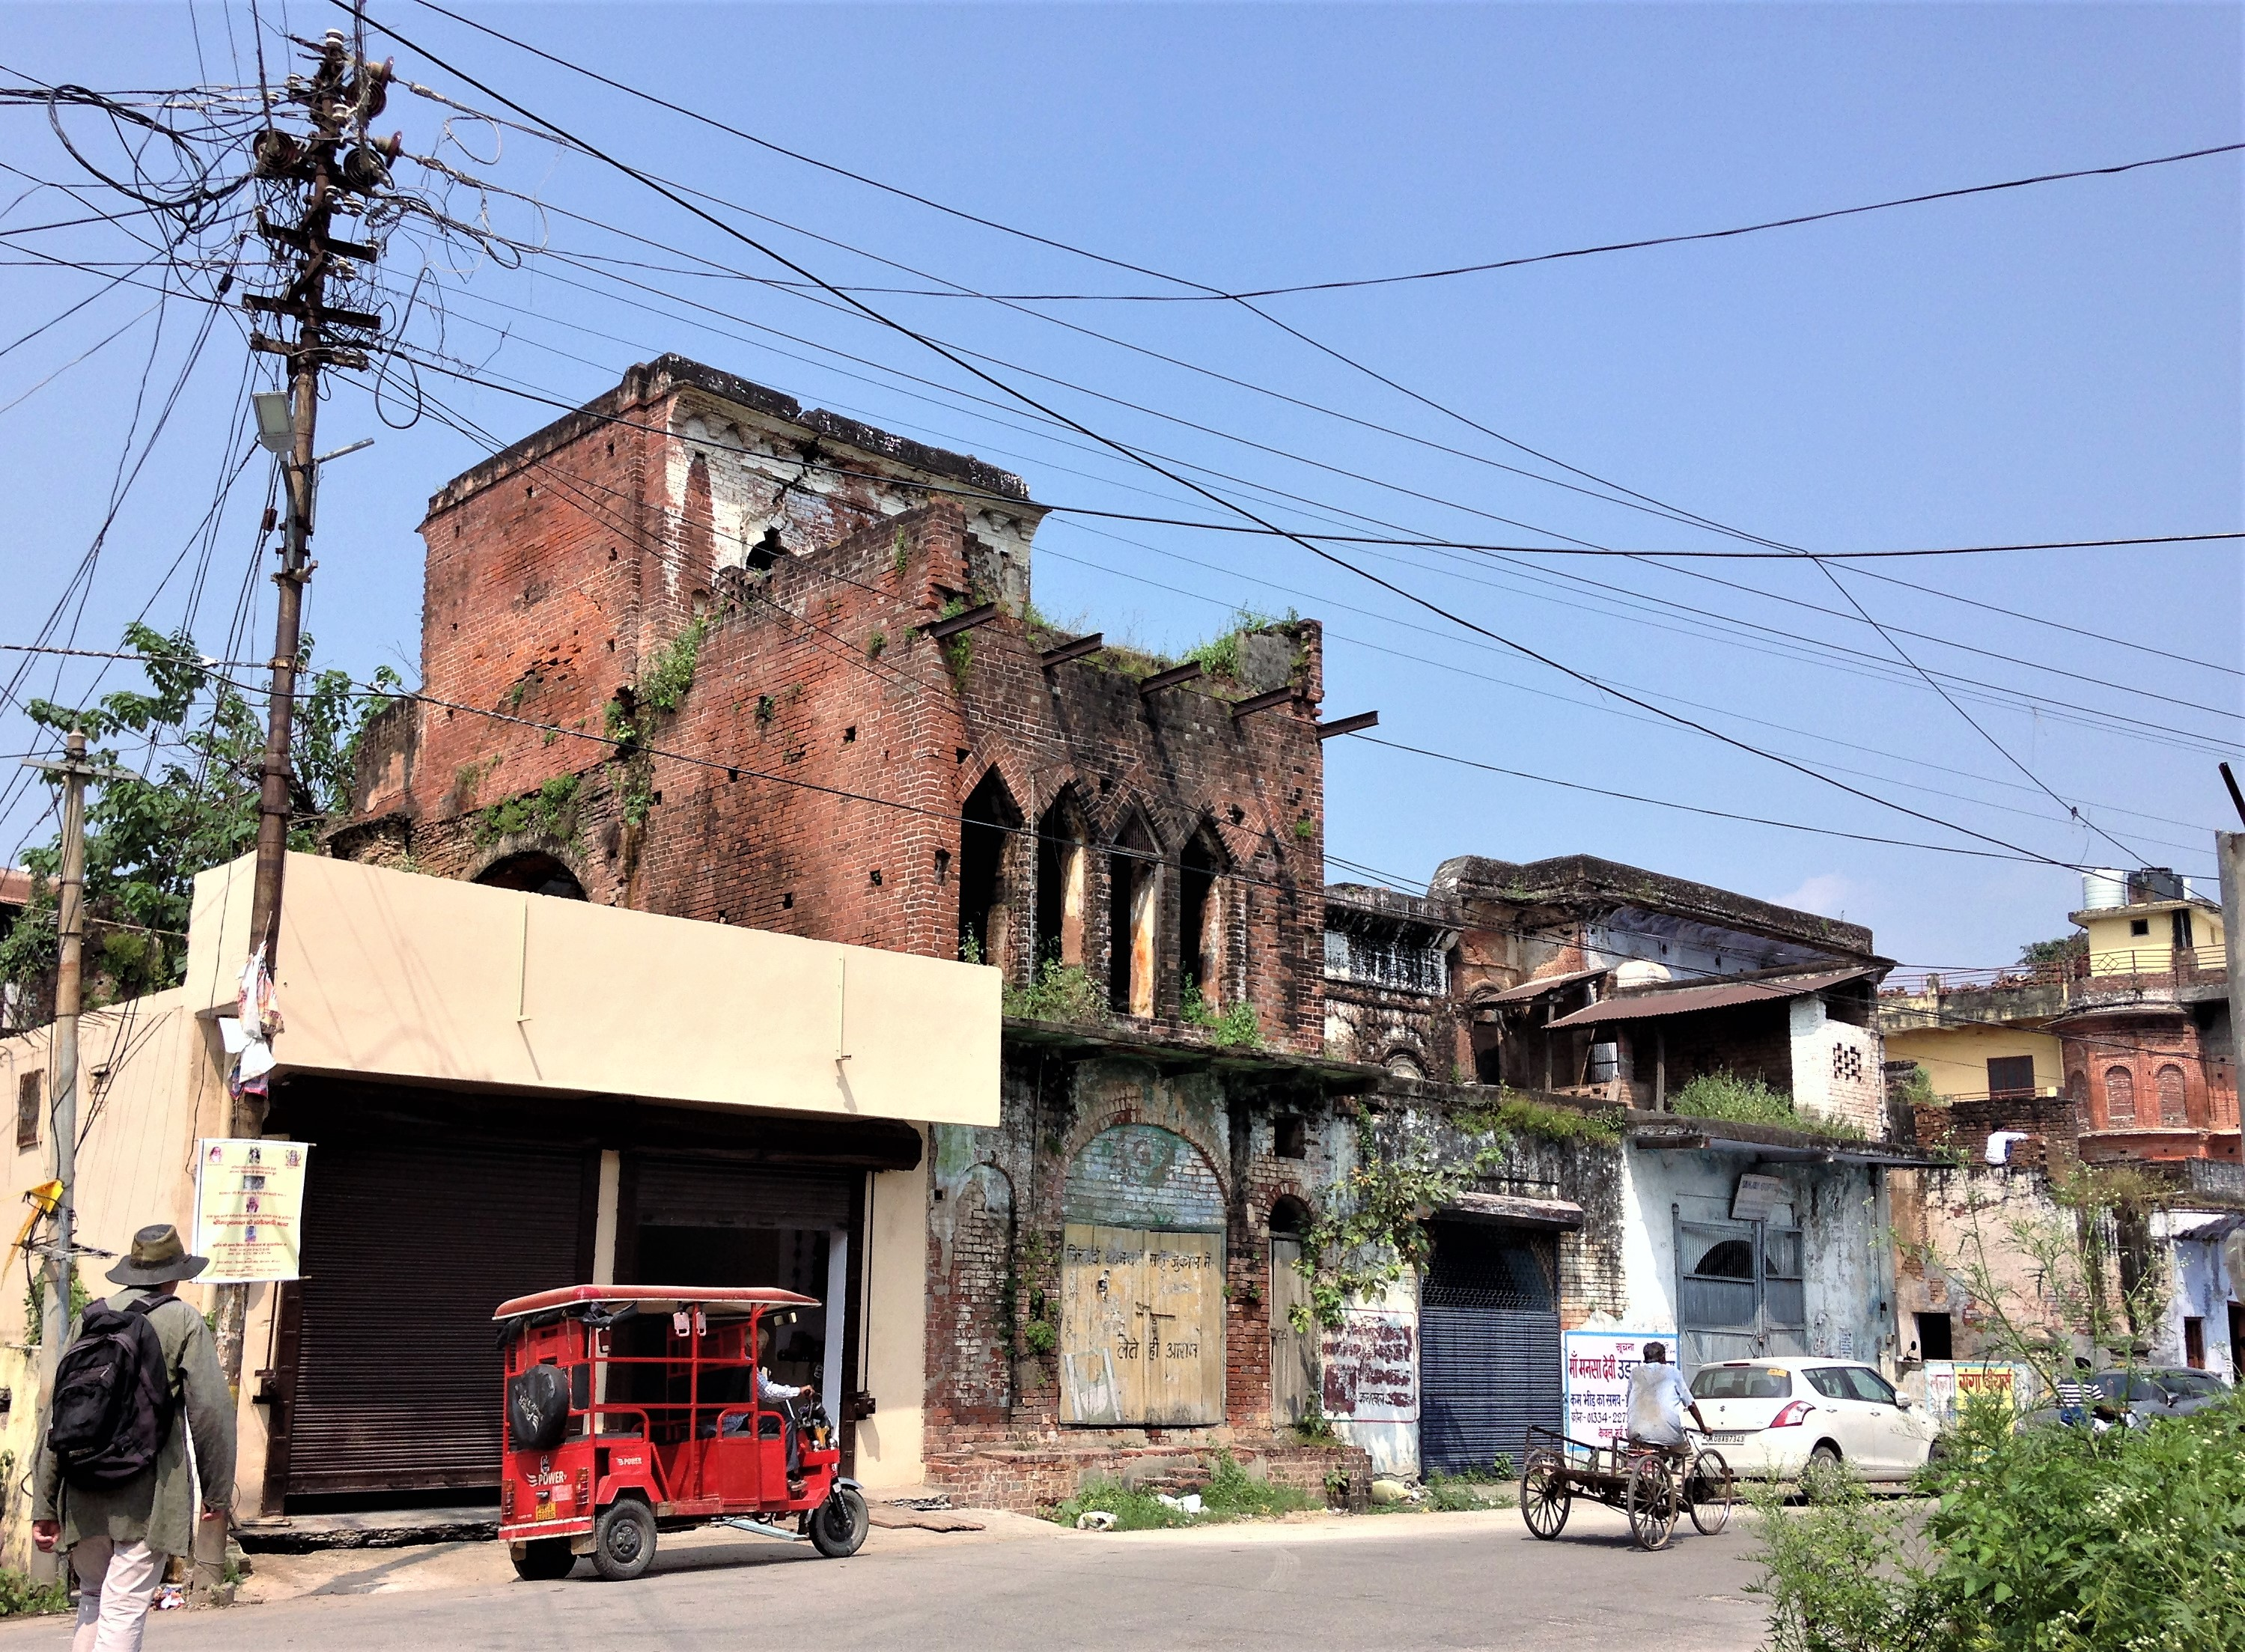 Some interesting old buildings we spotted in Kankhal during our walk to Ma Anandamayi's  ashram in Kankhal, a suburb of Haridwar.